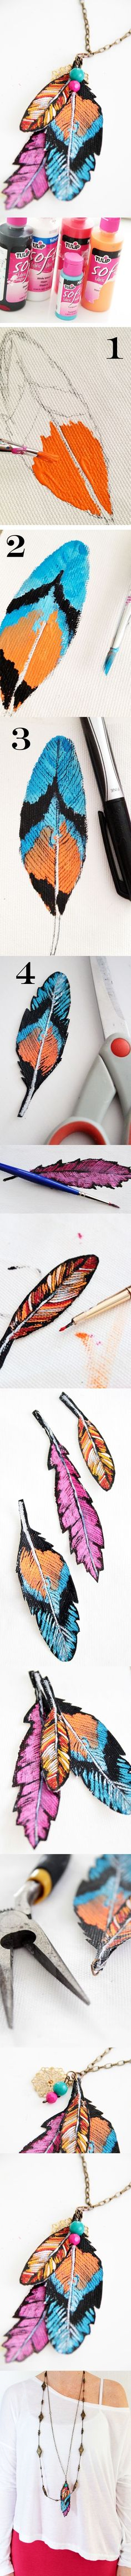 craft, painted feathers, pendant, art, diy necklace